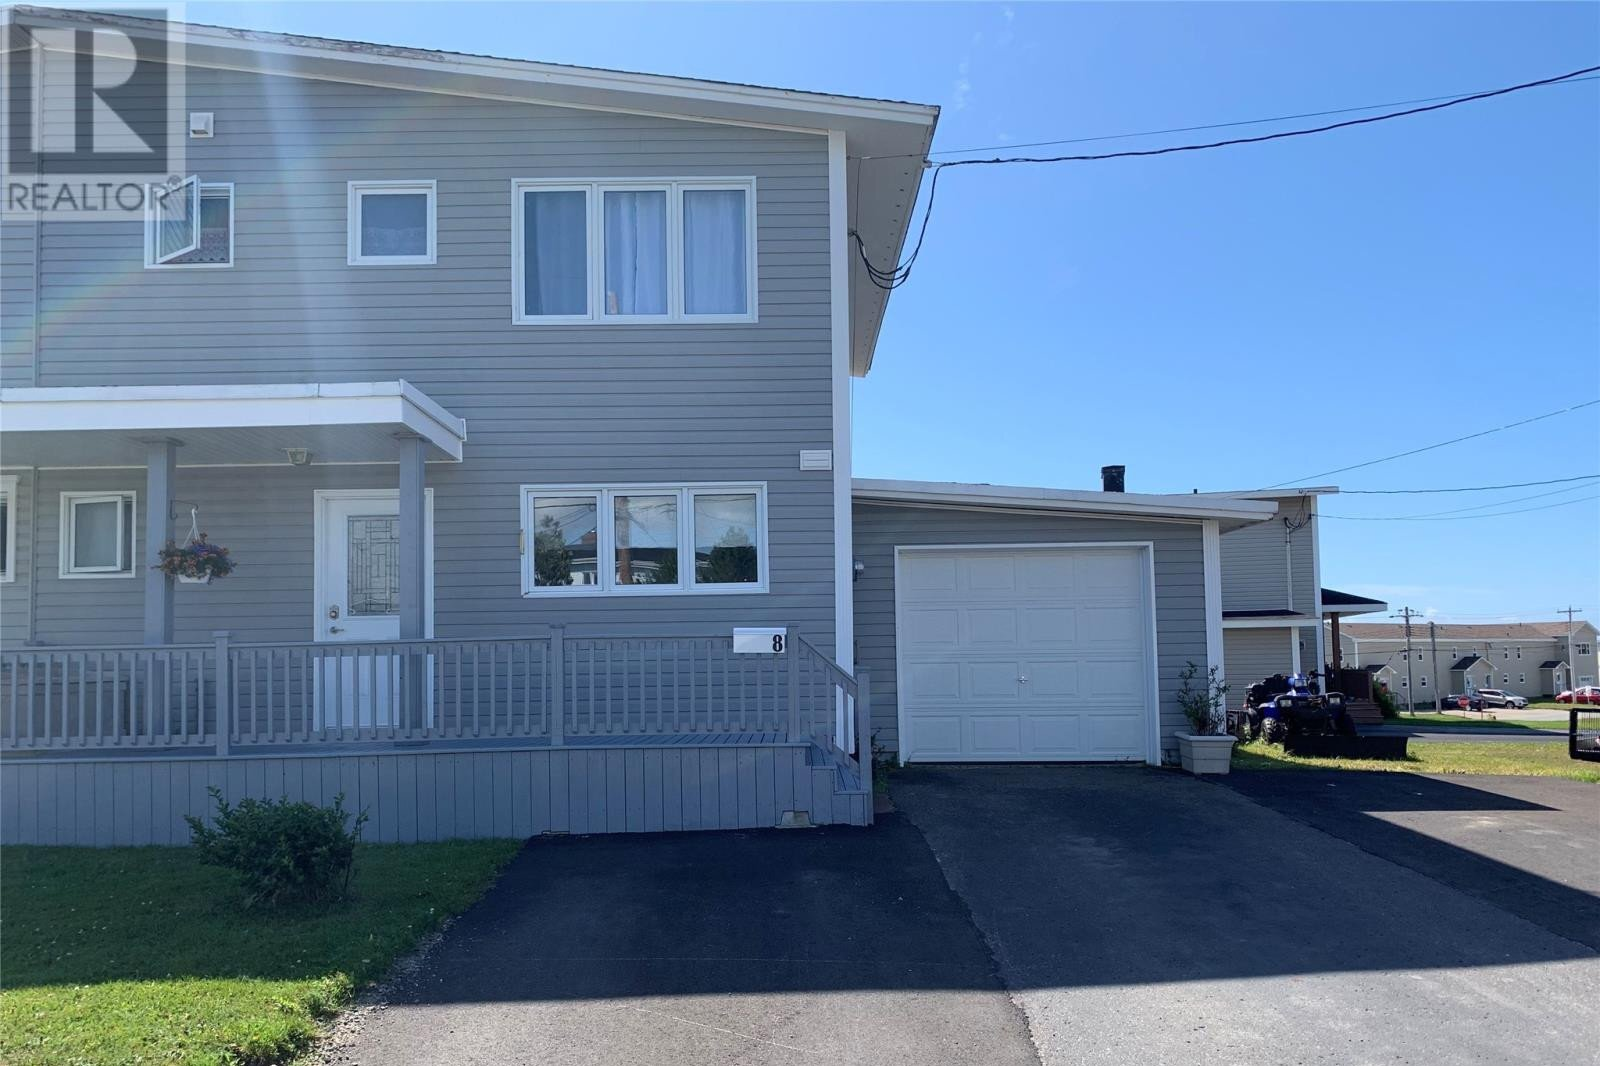 House for sale at 8 Georgia Lp Stephenville Newfoundland - MLS: 1202397